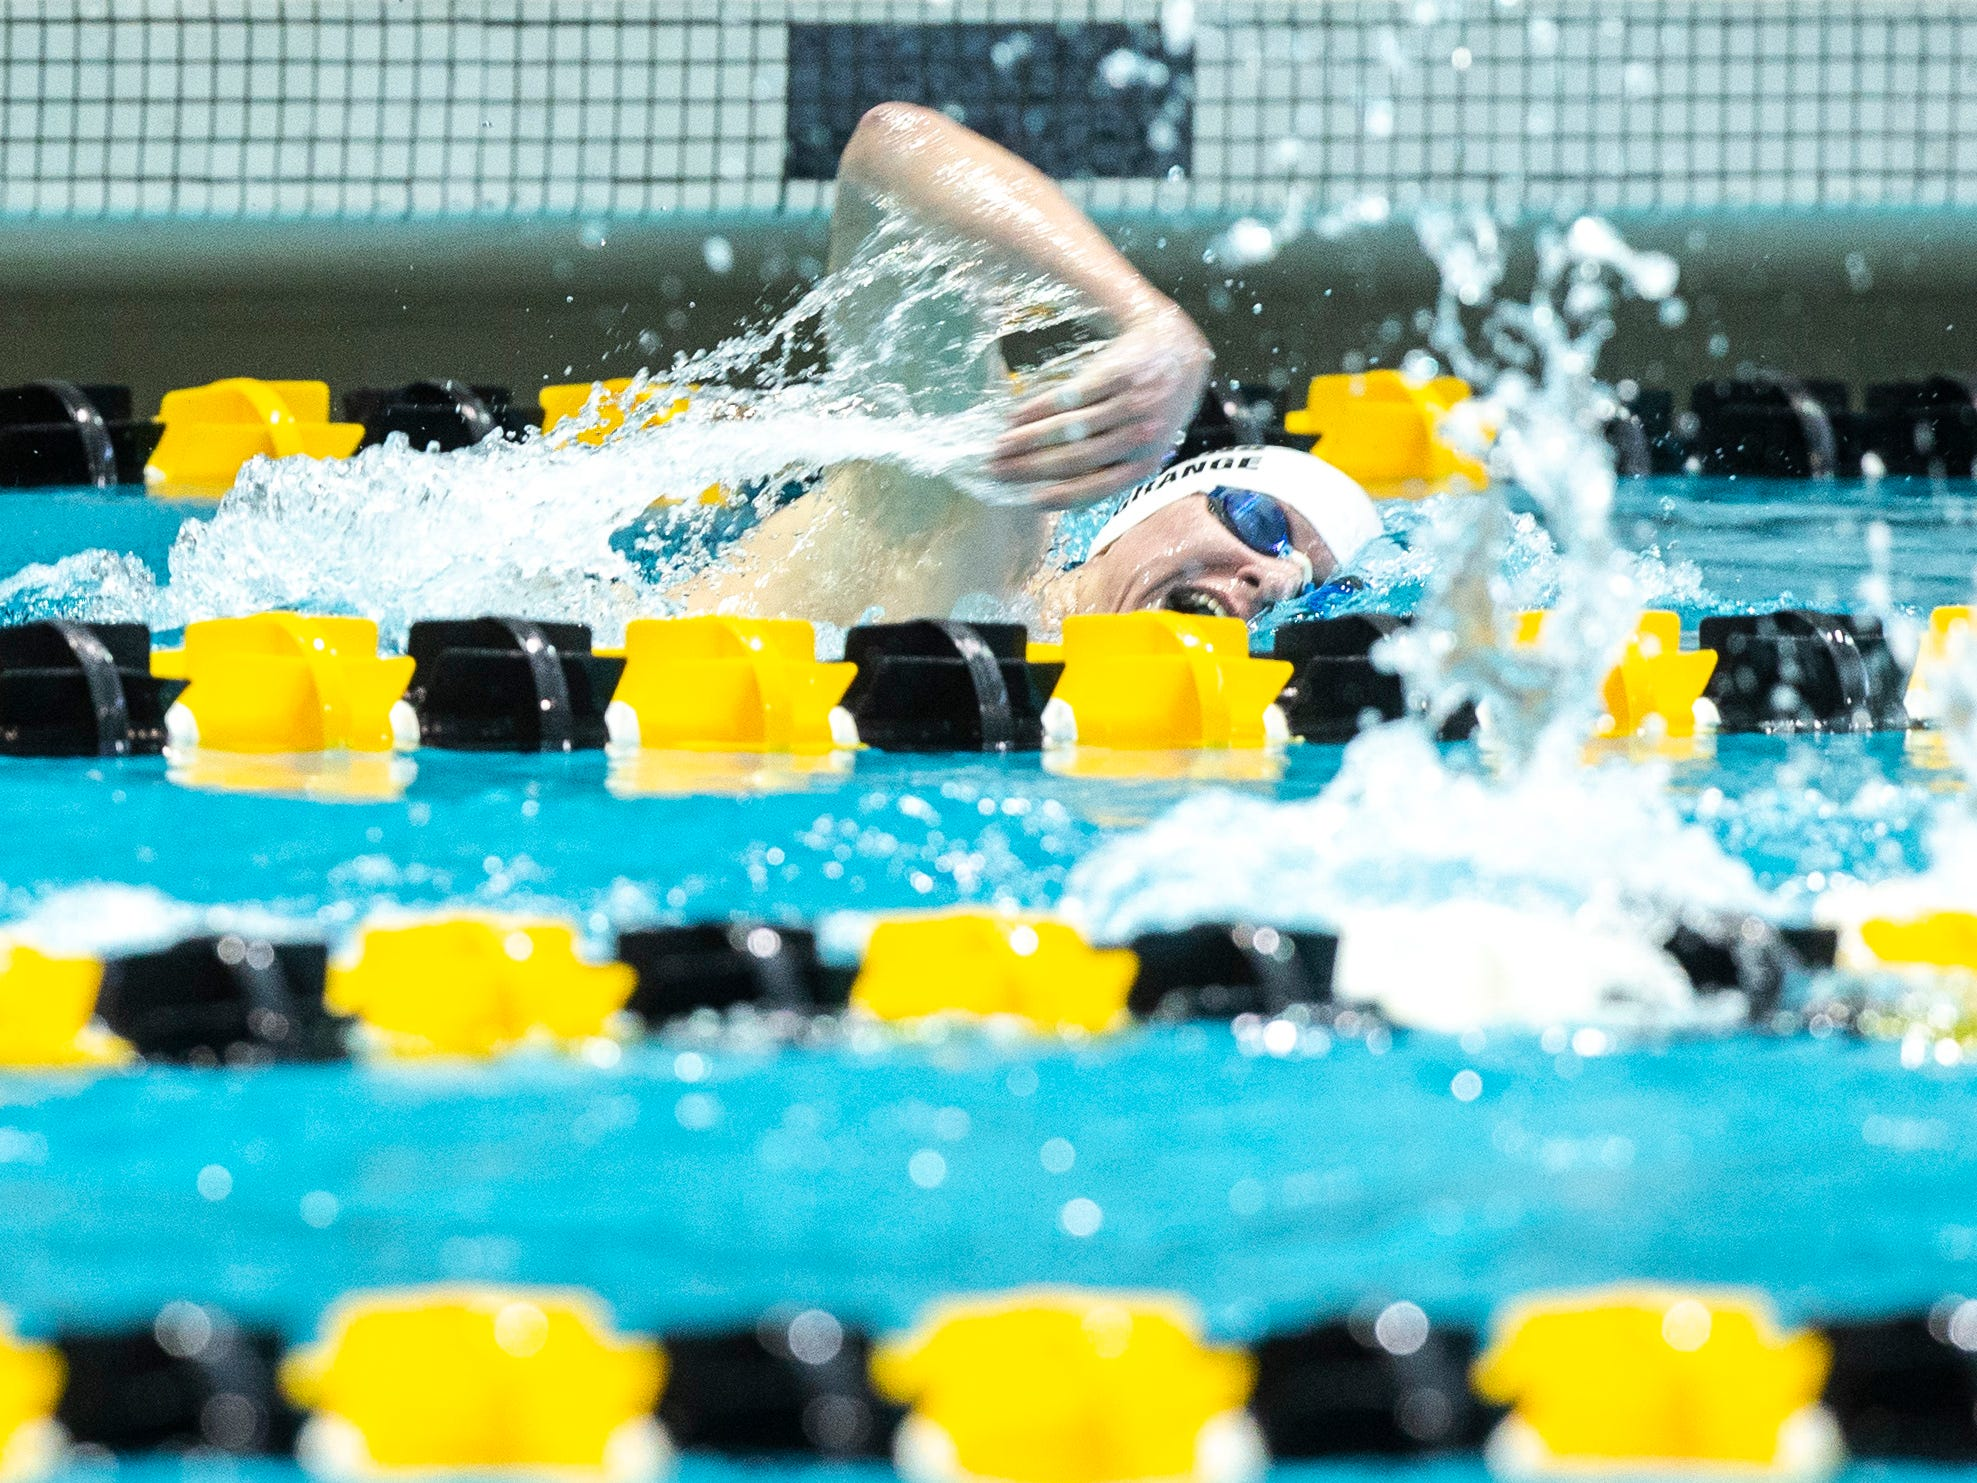 Indianola junior Brad LaGrange competes in the 500 yard freestyle during the Iowa boys' state swimming regional championship meet on Saturday, Feb. 9, 2019 at Campus Recreation and Wellness Center on the University of Iowa campus in Iowa City, Iowa. LaGrange finished 22nd overall, with a time of 4:59.85.